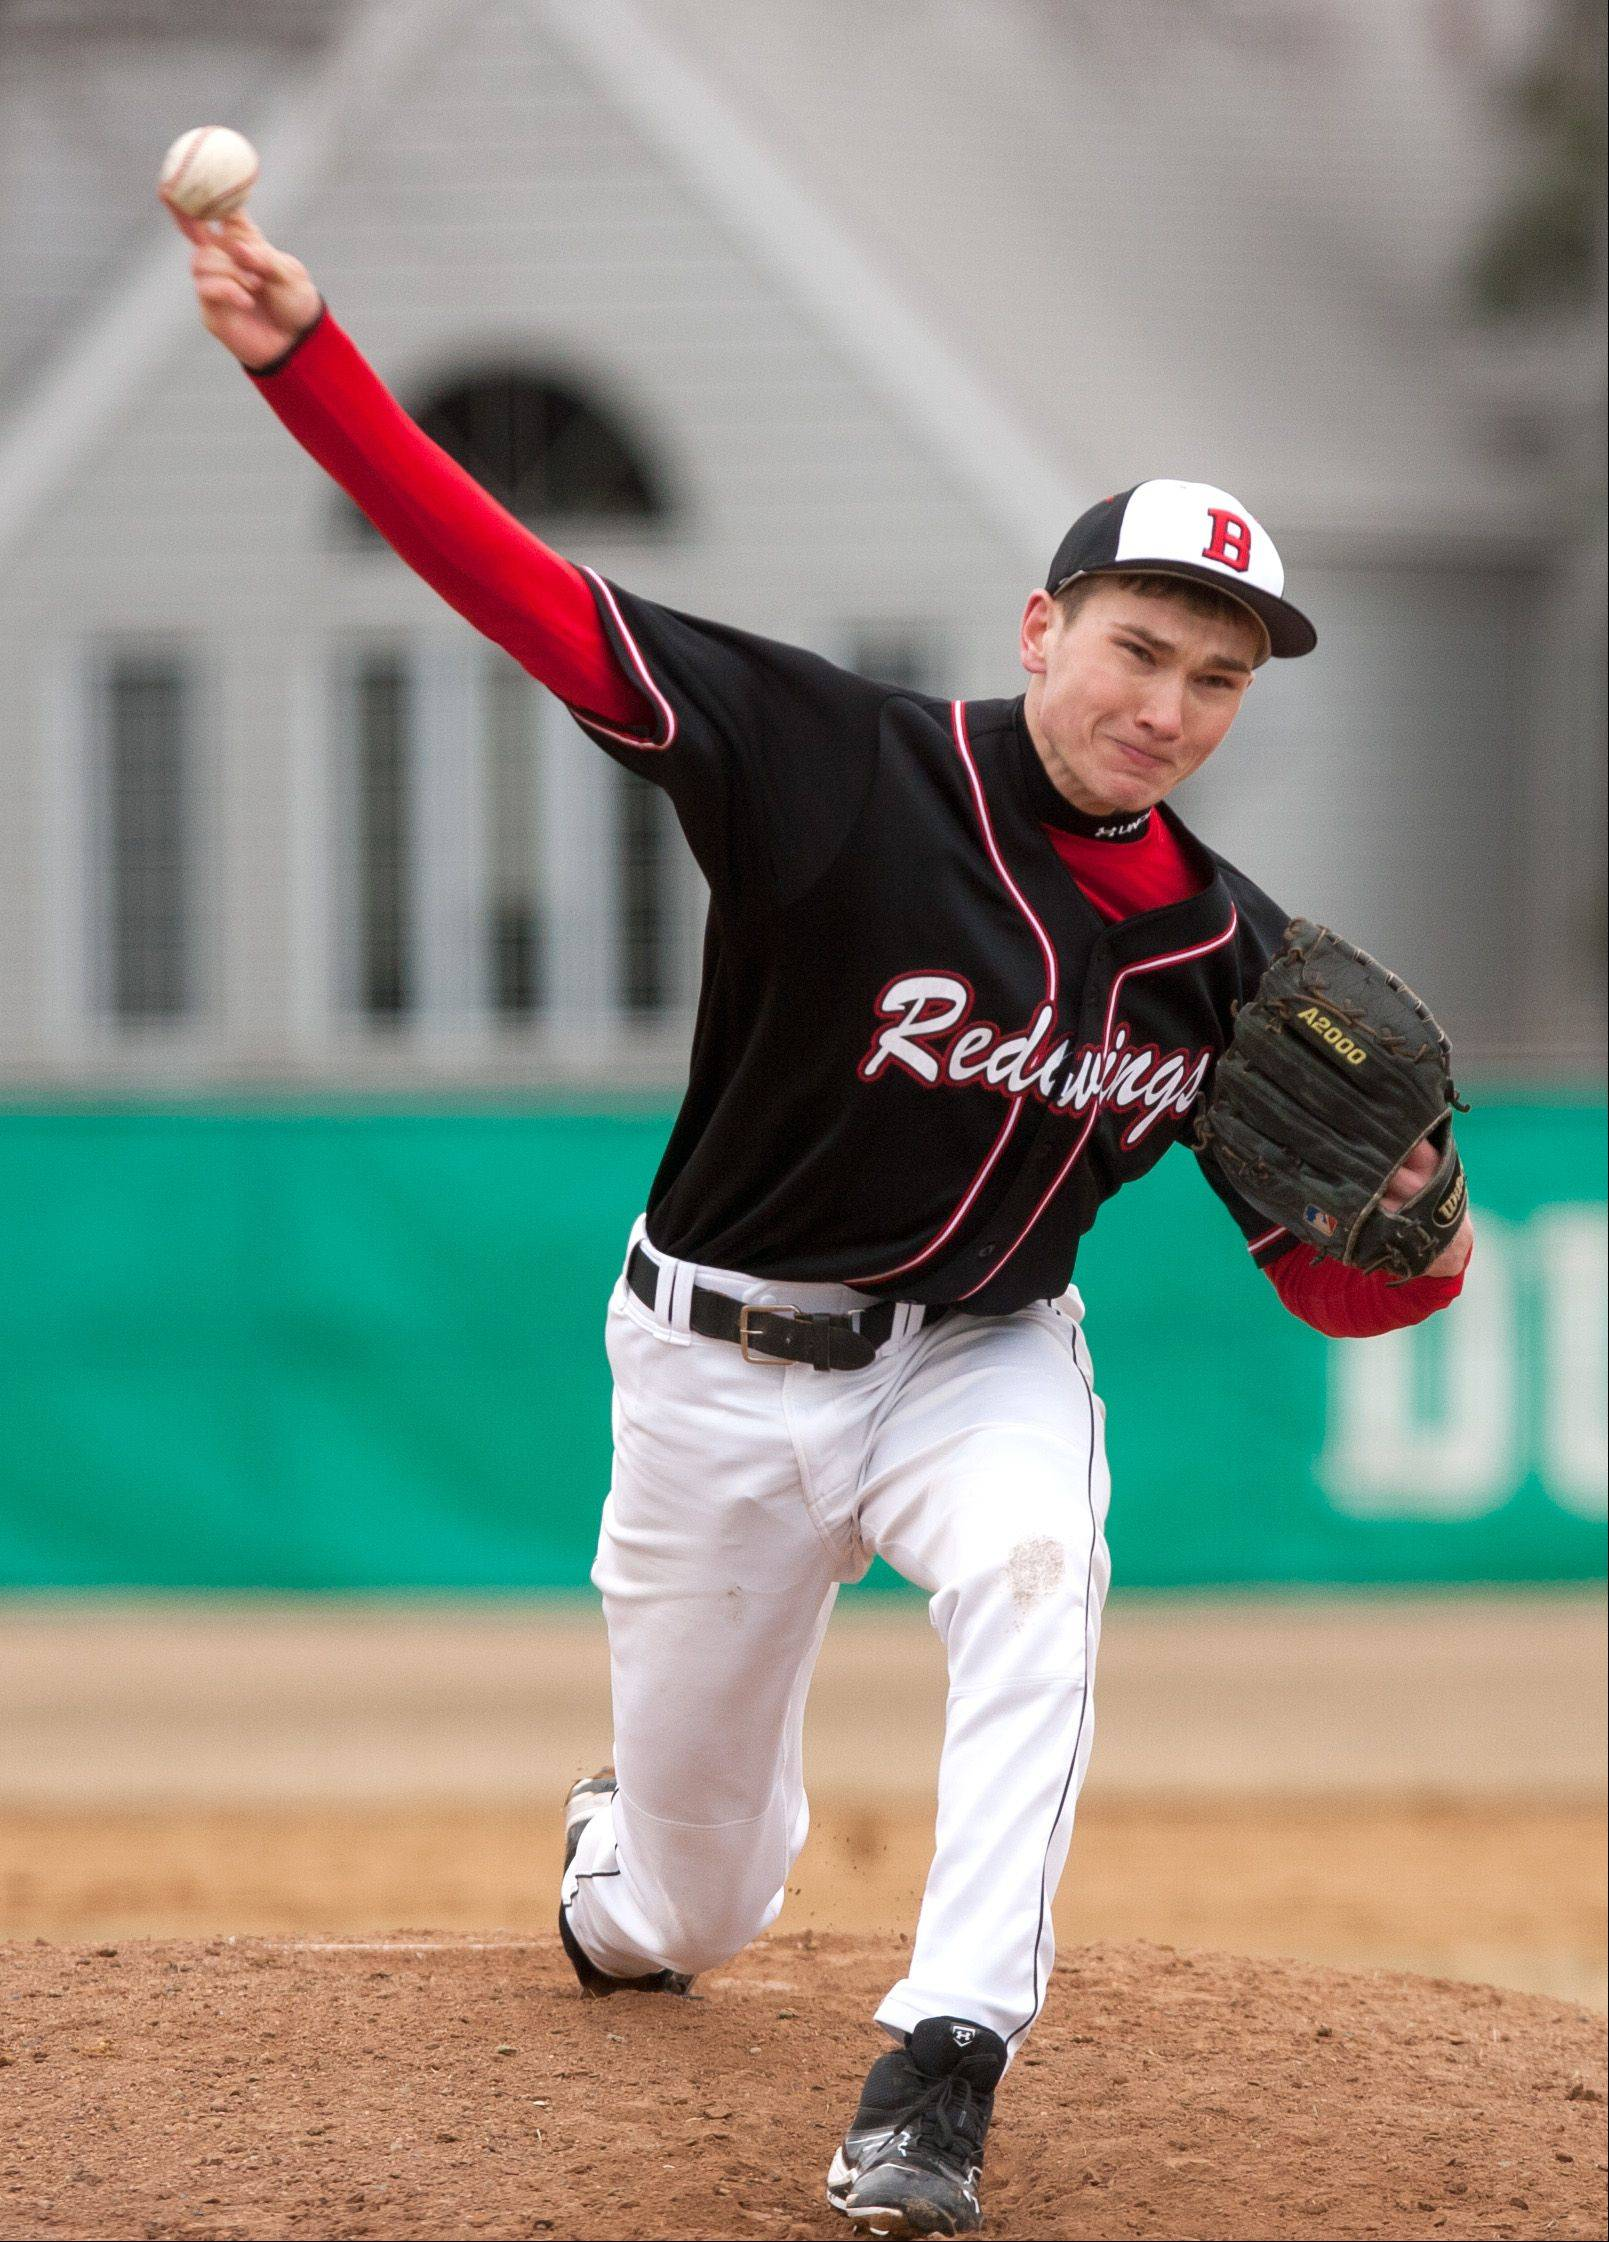 Benet's Brendan Pullen delivers a pitch against York during baseball action in Elmhurst.